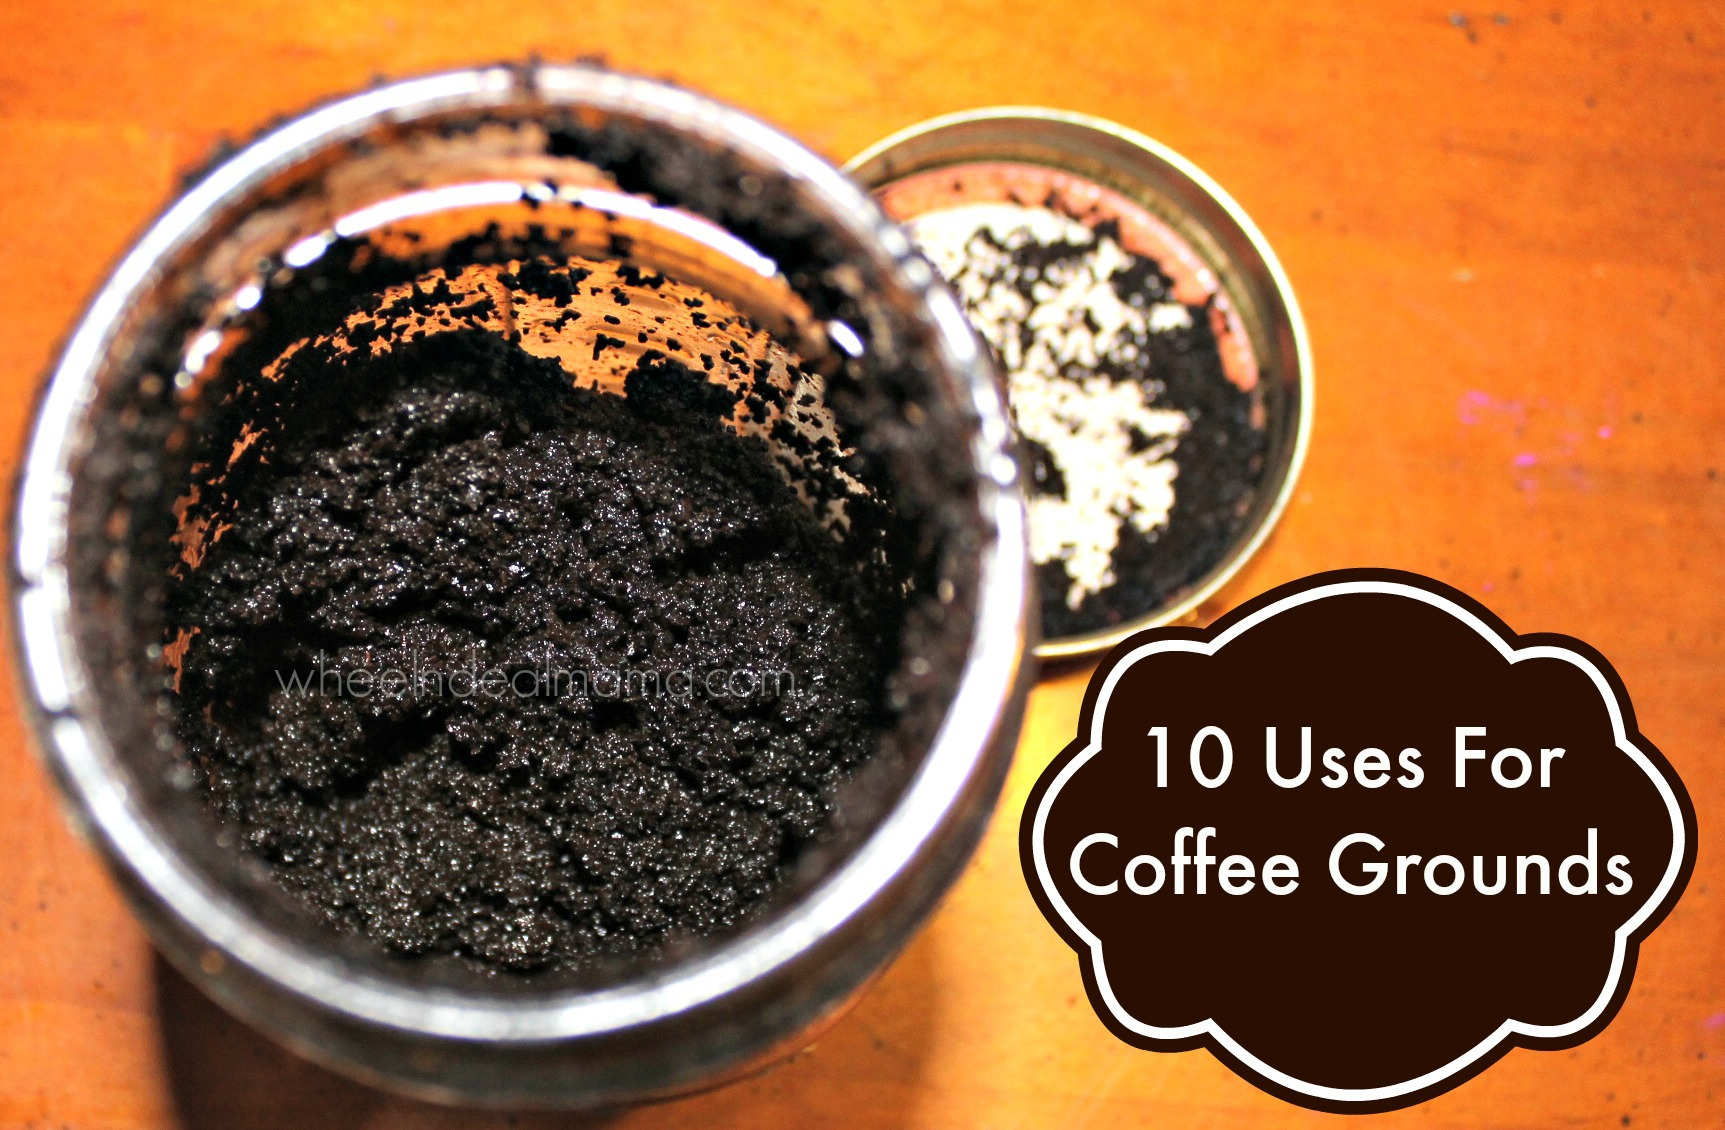 3 Way Refrigerator >> 10 Uses for Coffee Grounds - Wheel N Deal Mama